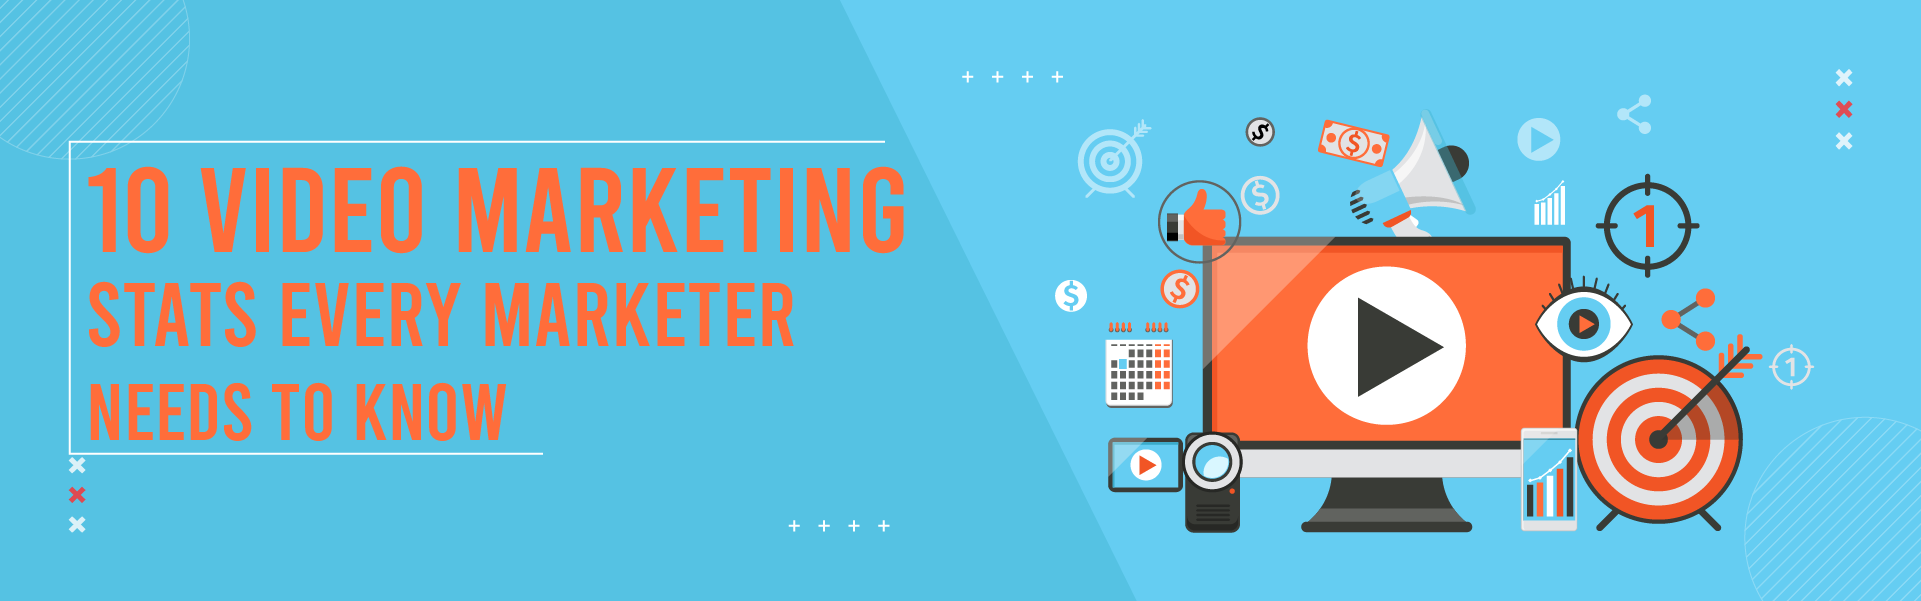 You are currently viewing 10 Video Marketing Stats Every Marketer Needs to Know in 2021